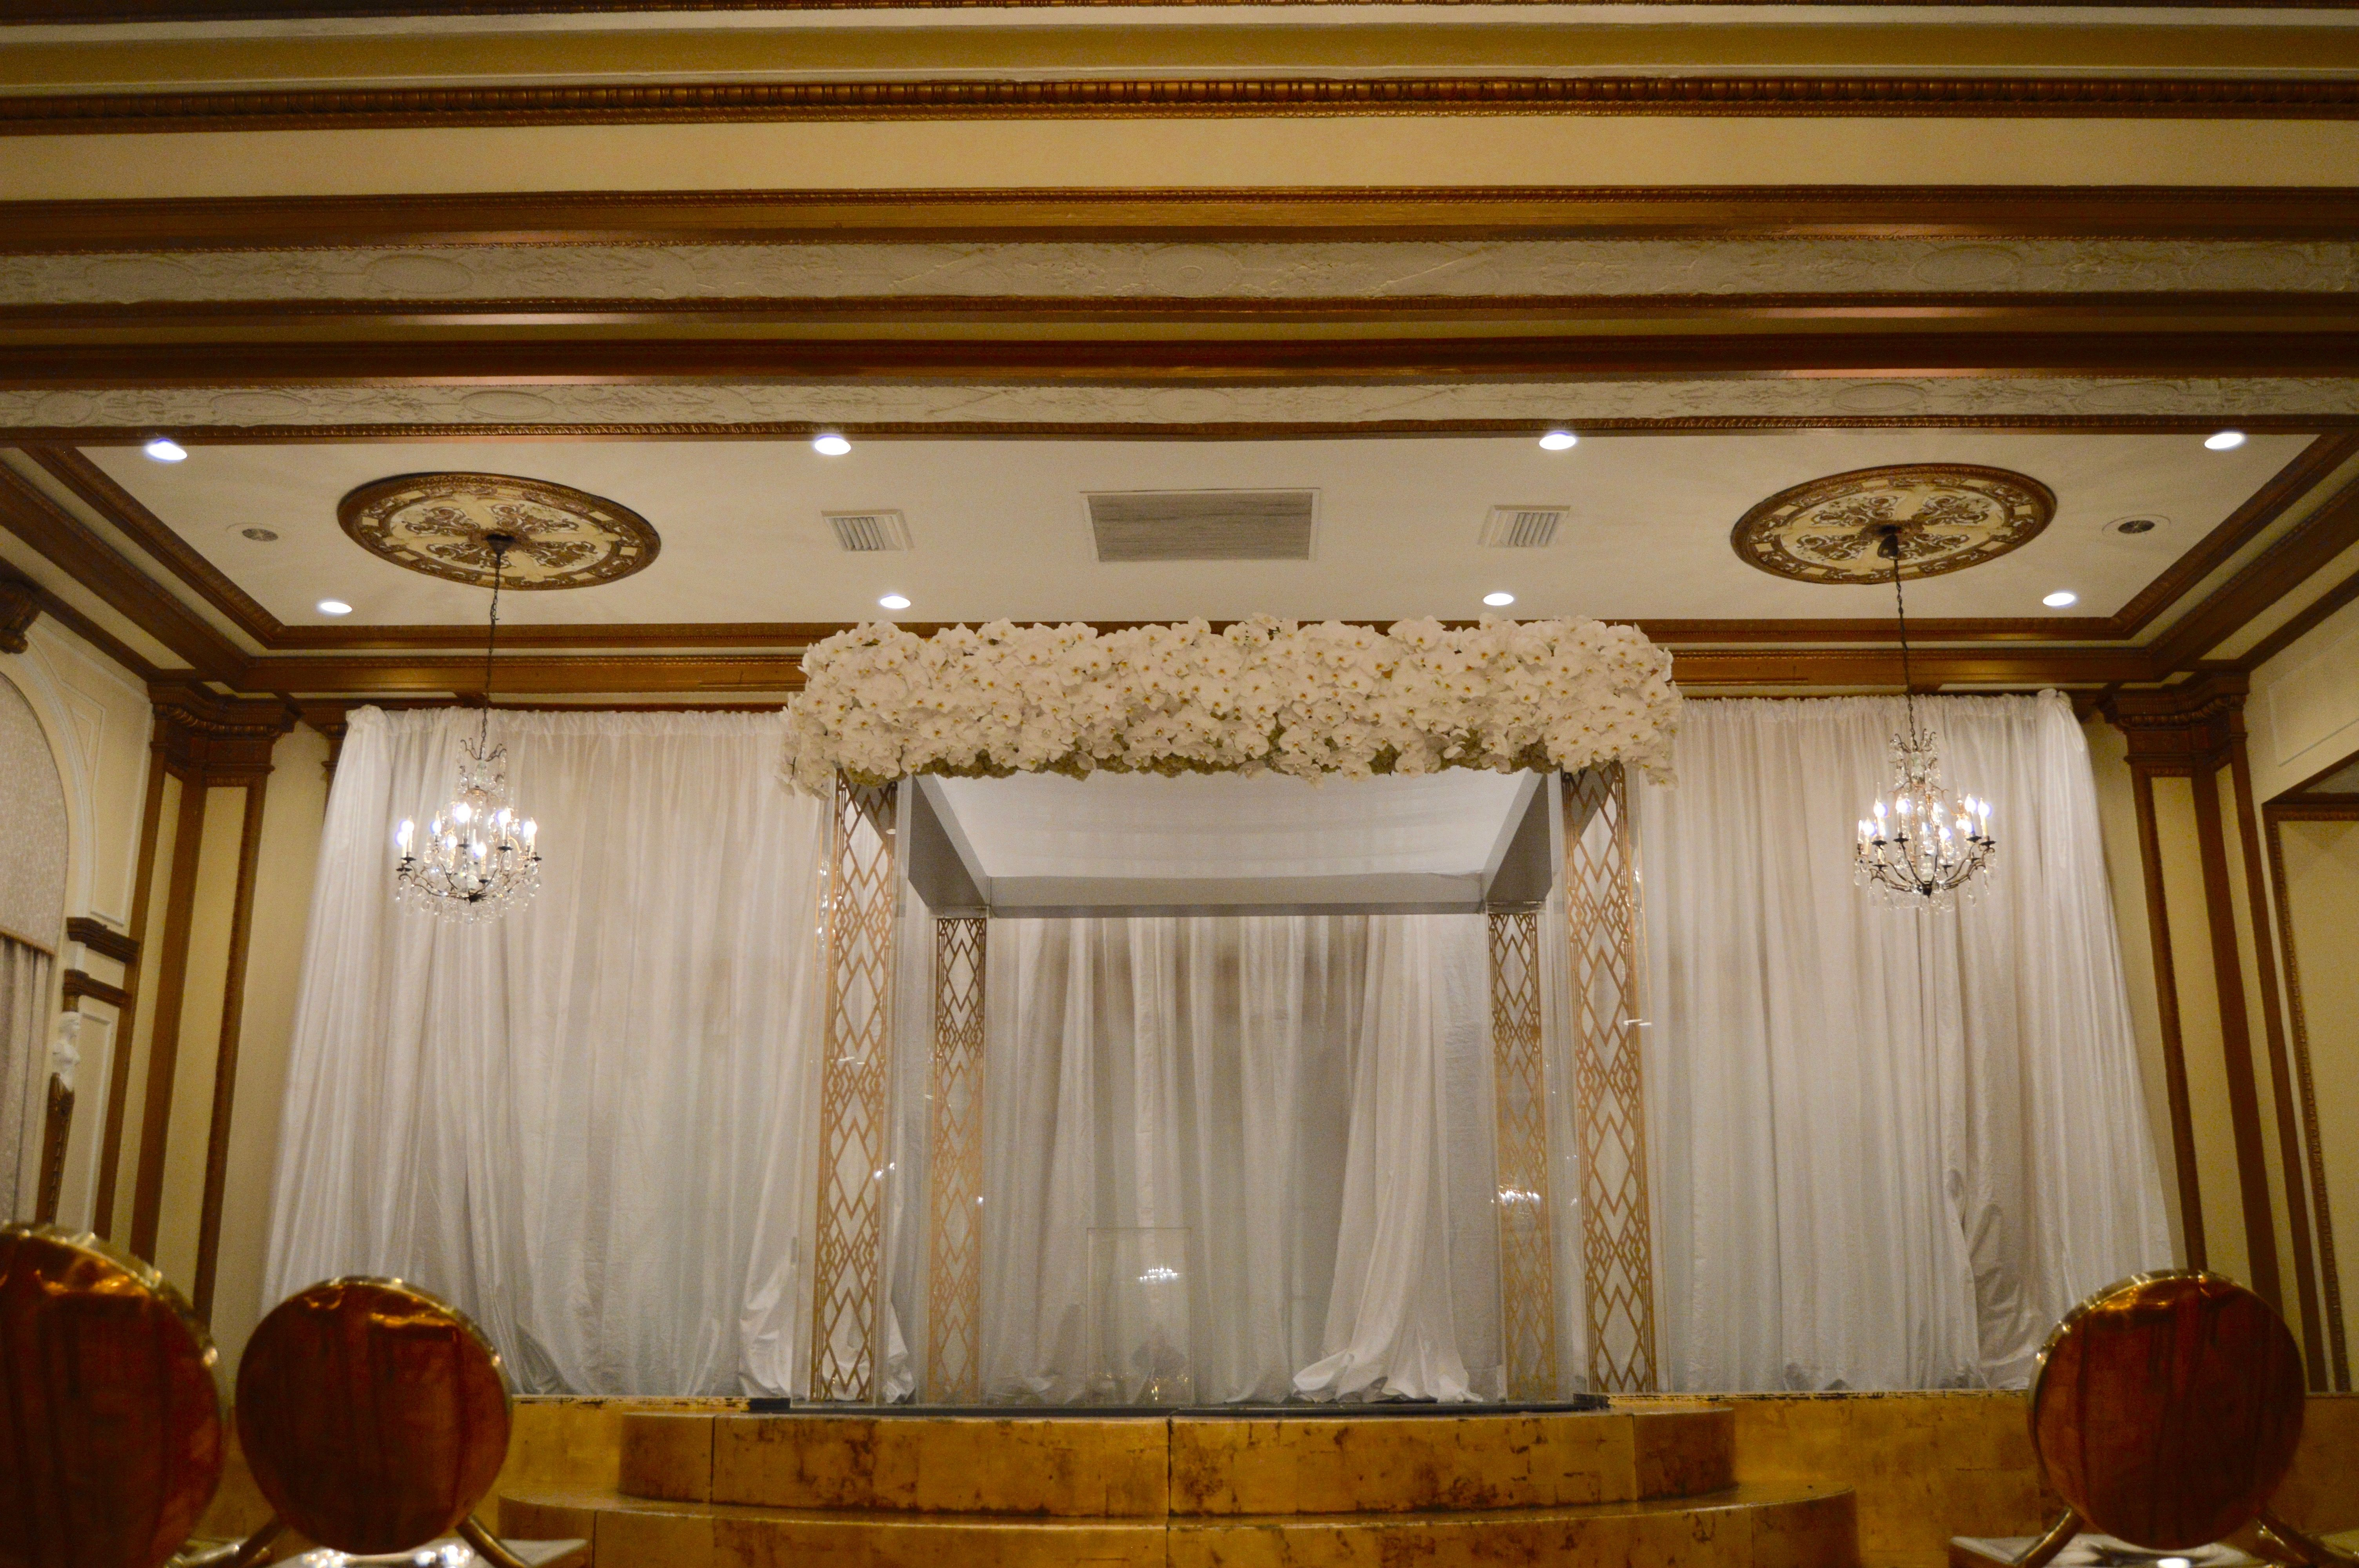 Custom Chuppah in the Venetian Room. Acrylic legs and solid floral top.